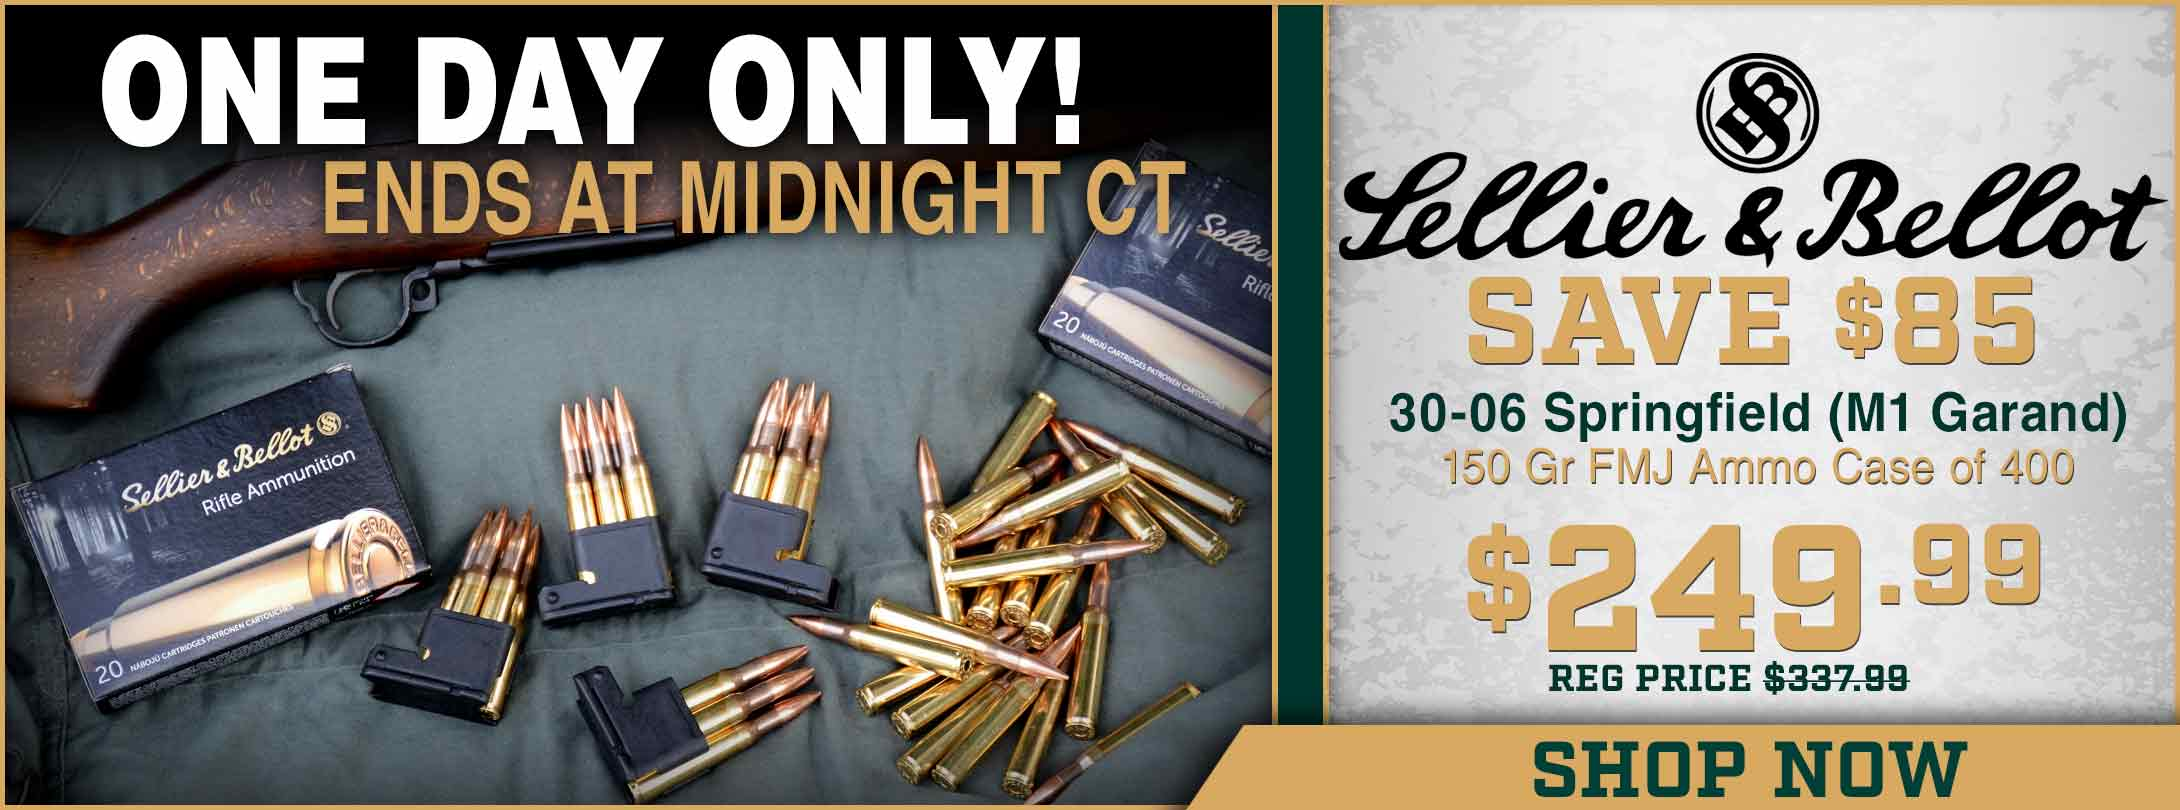 Save Over $85 on Sellier & Bellot 30-06!